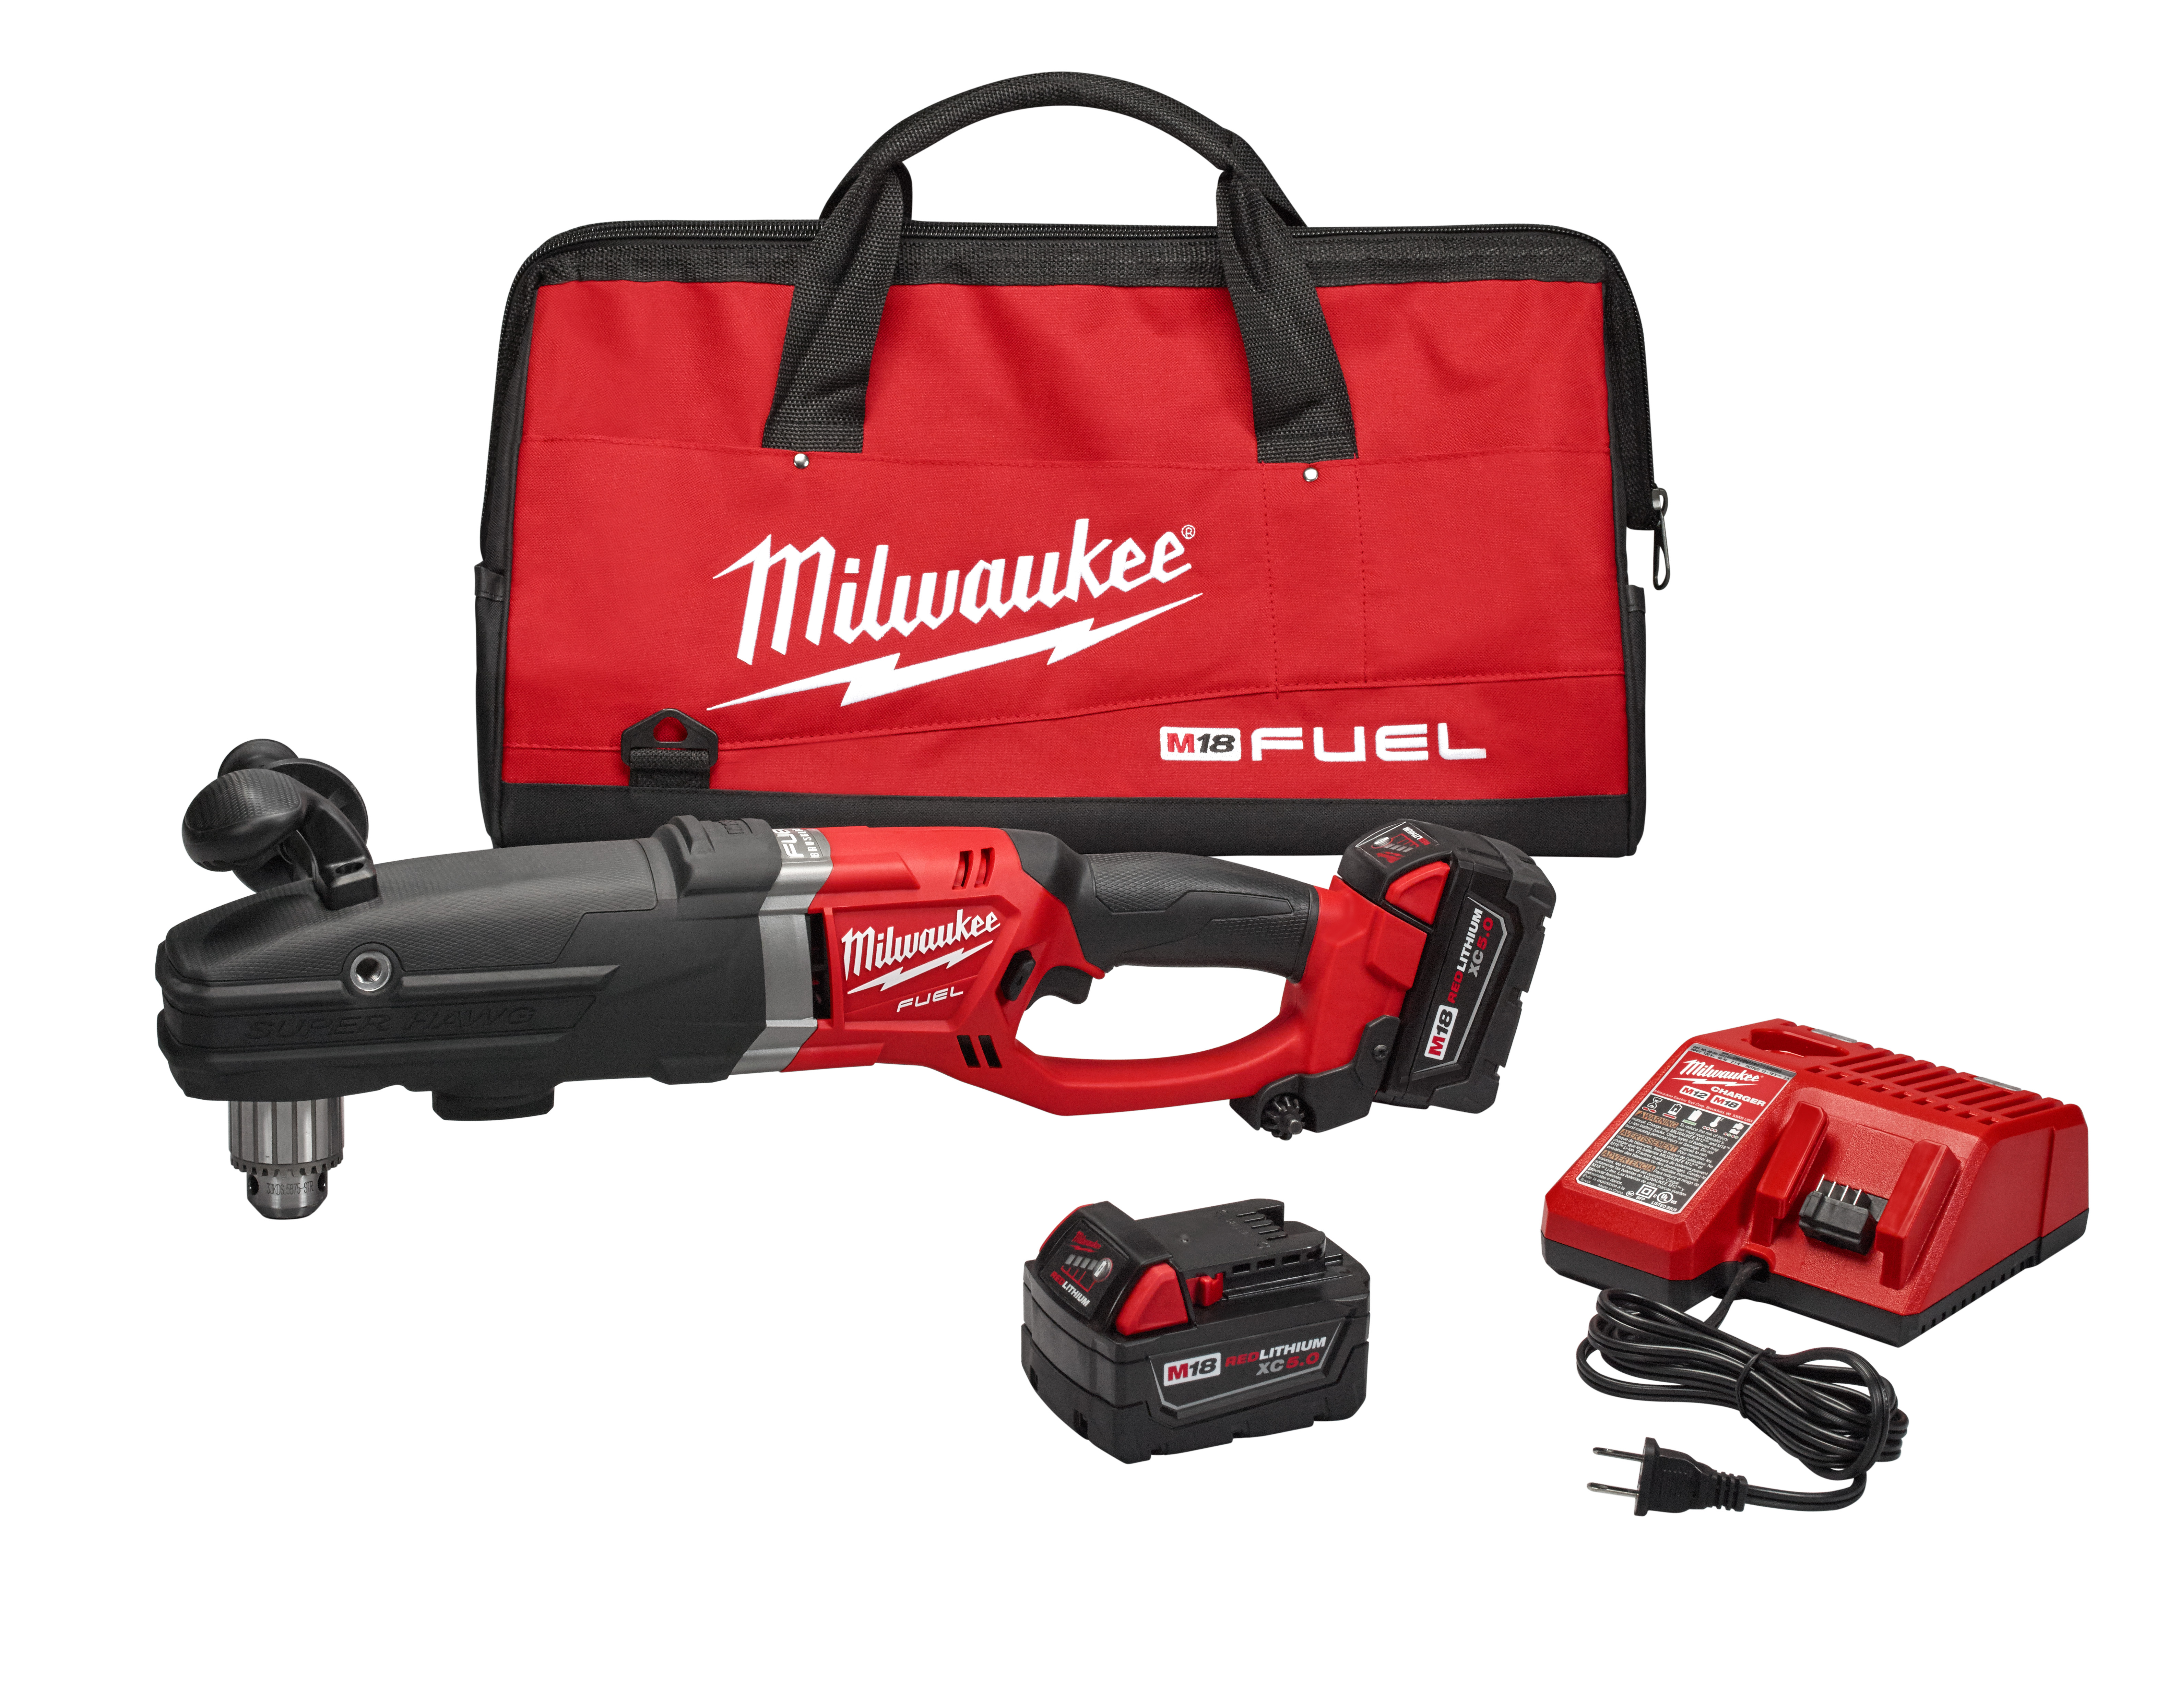 Milwaukee® M18™ FUEL™ SUPER HAWG® 2709-22 SUPER HAWG® Cordless Right Angle Drill Kit, 1/2 in Keyed Chuck, 18 VDC, 0 to 350/0 to 950 rpm No-Load, 22 in OAL, Lithium-Ion Battery